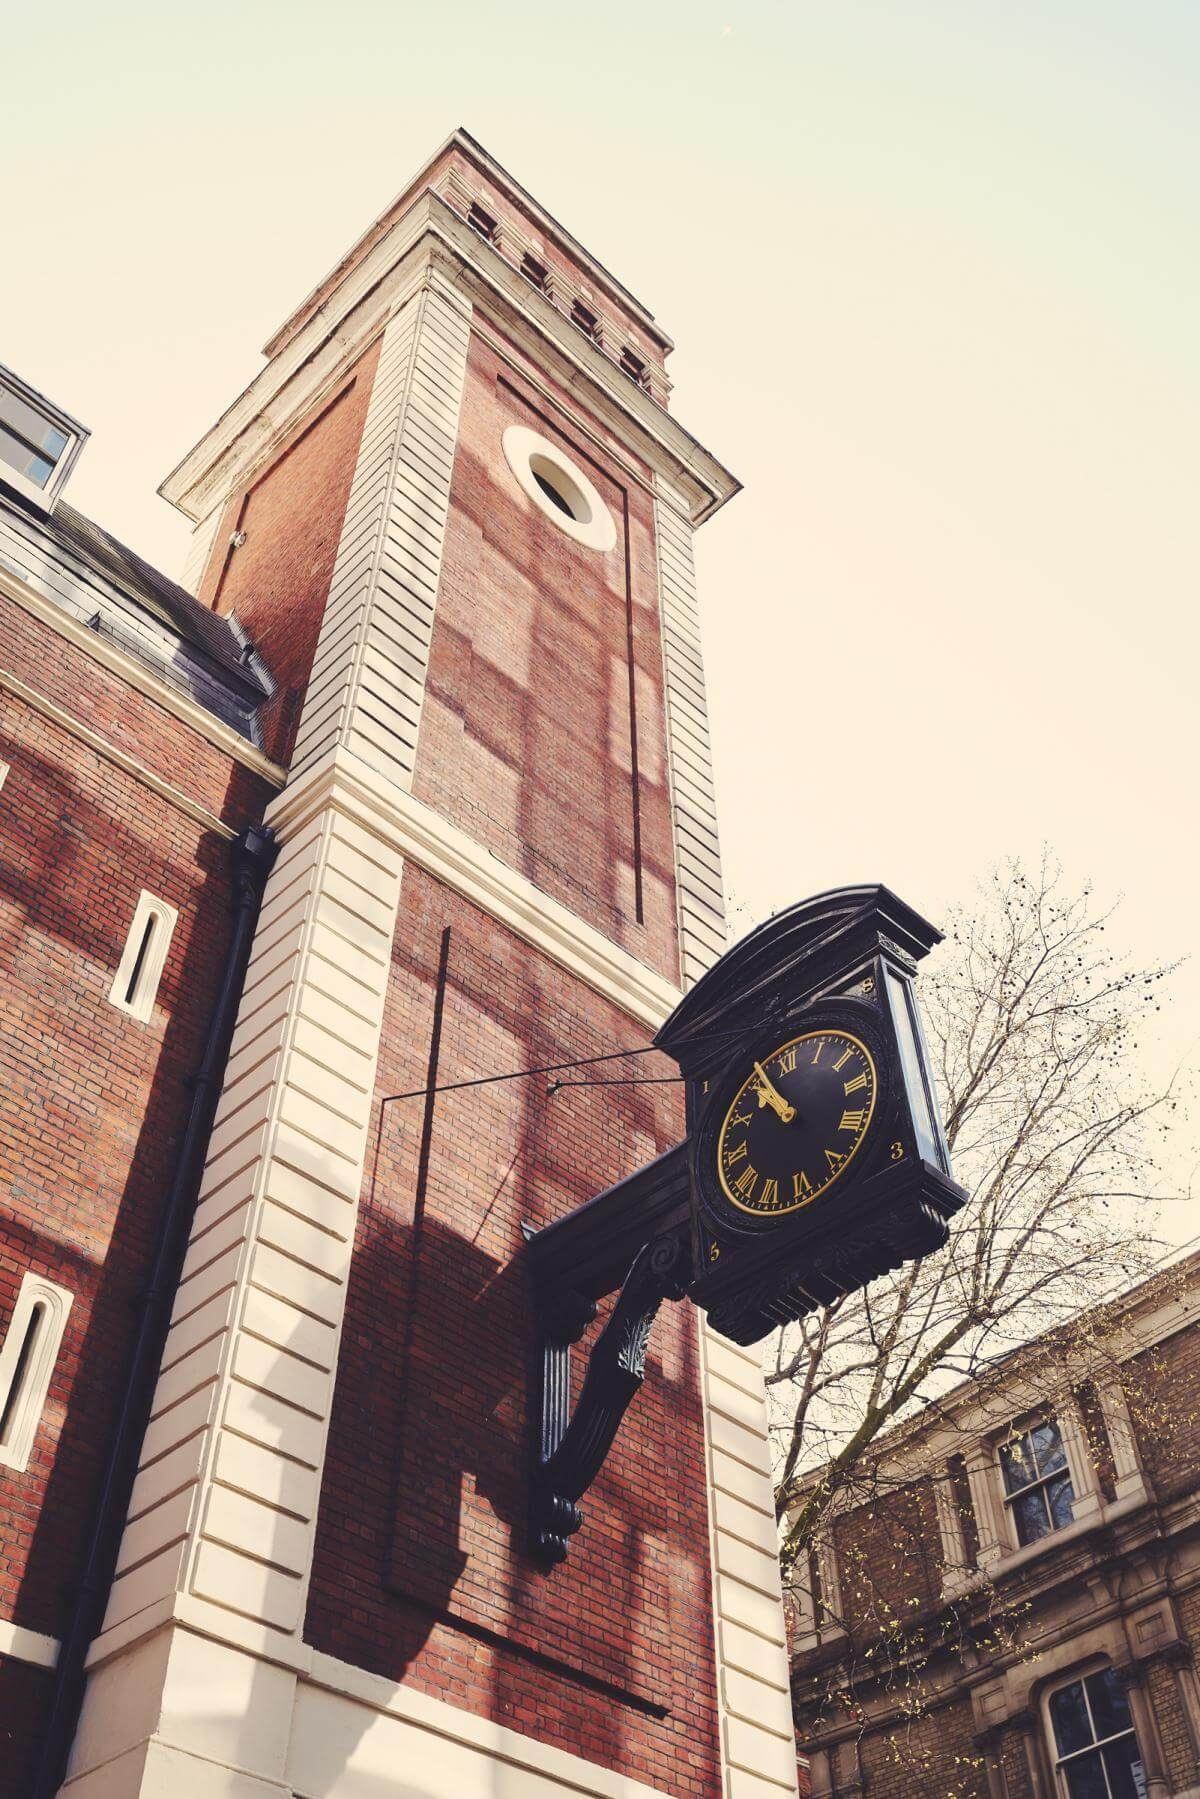 benjamin mcmahon the old rectory tower and clock